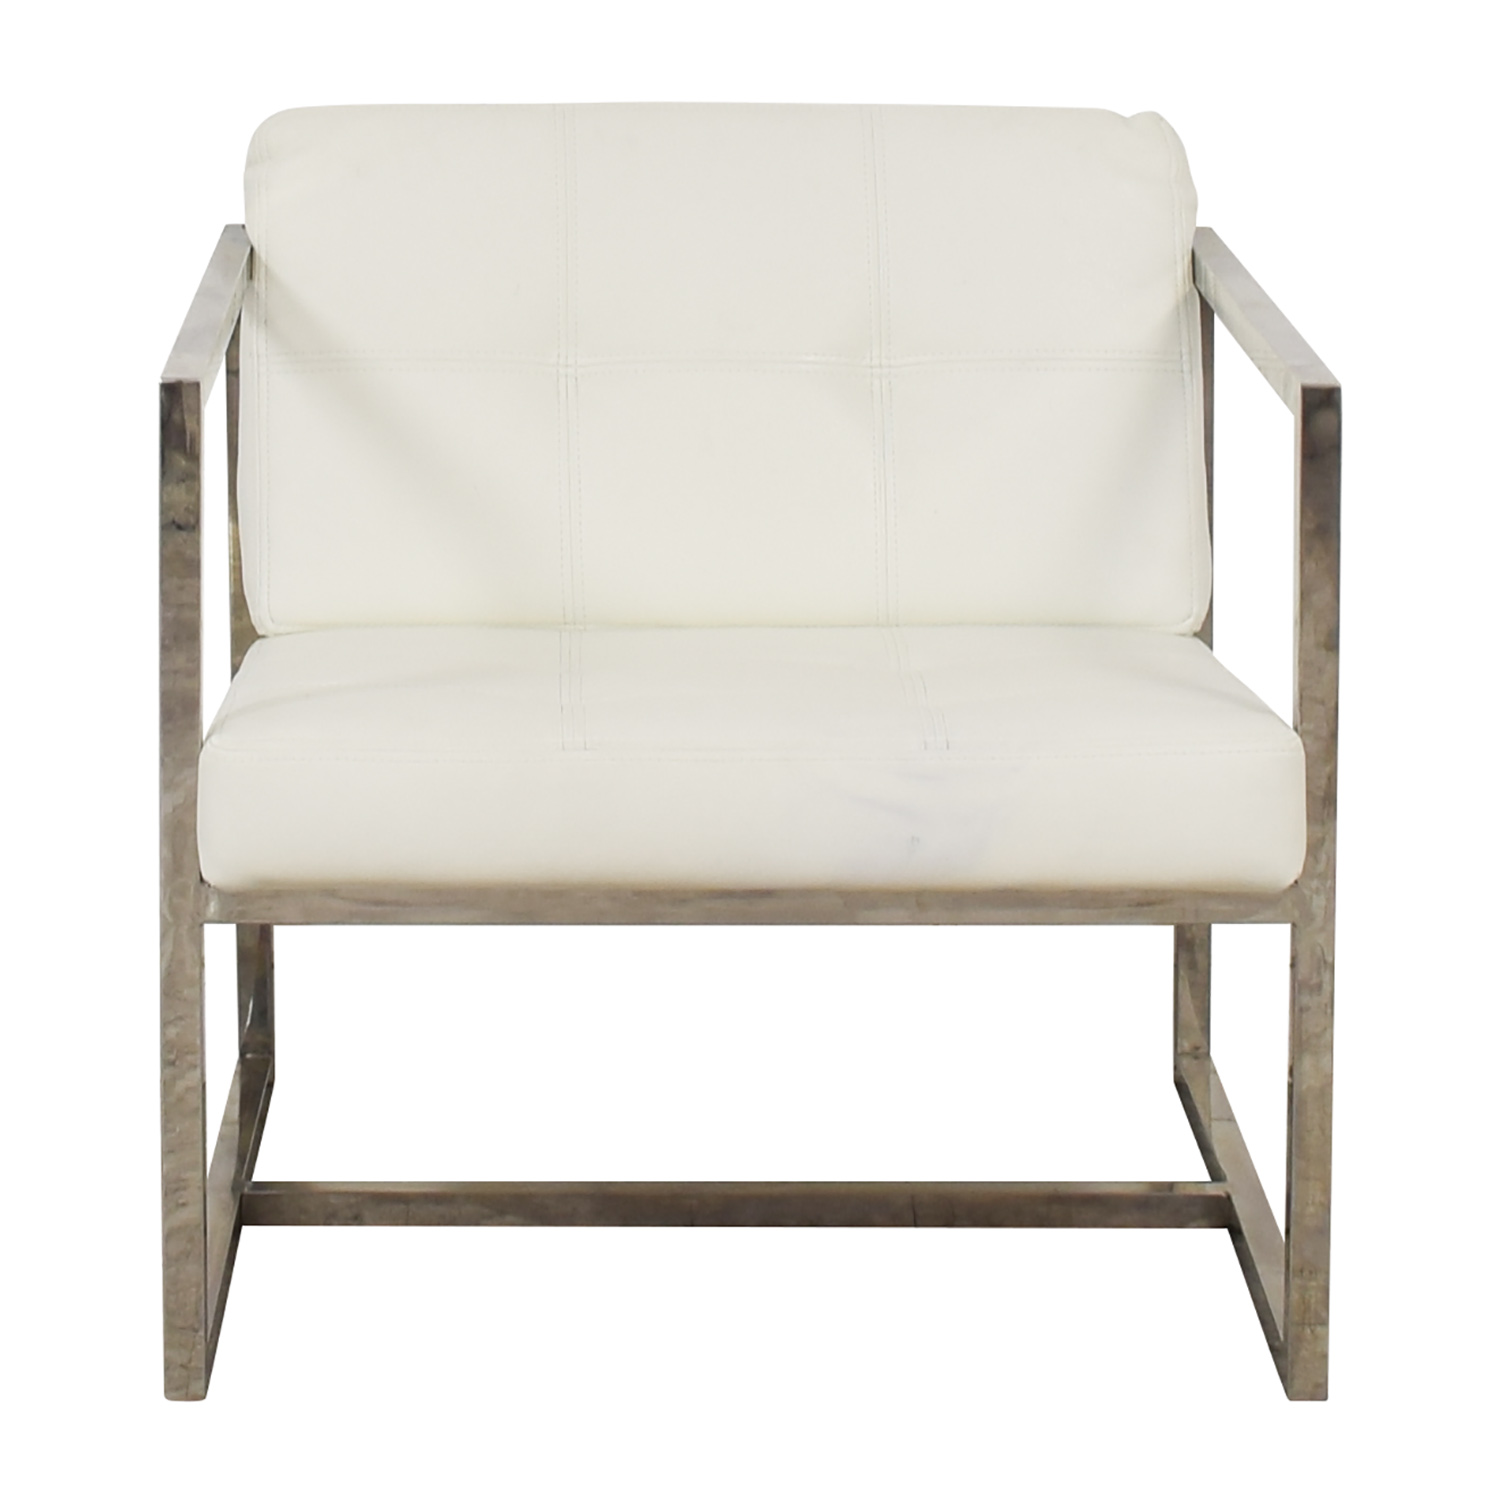 Modway Hover White Lounge Chair sale